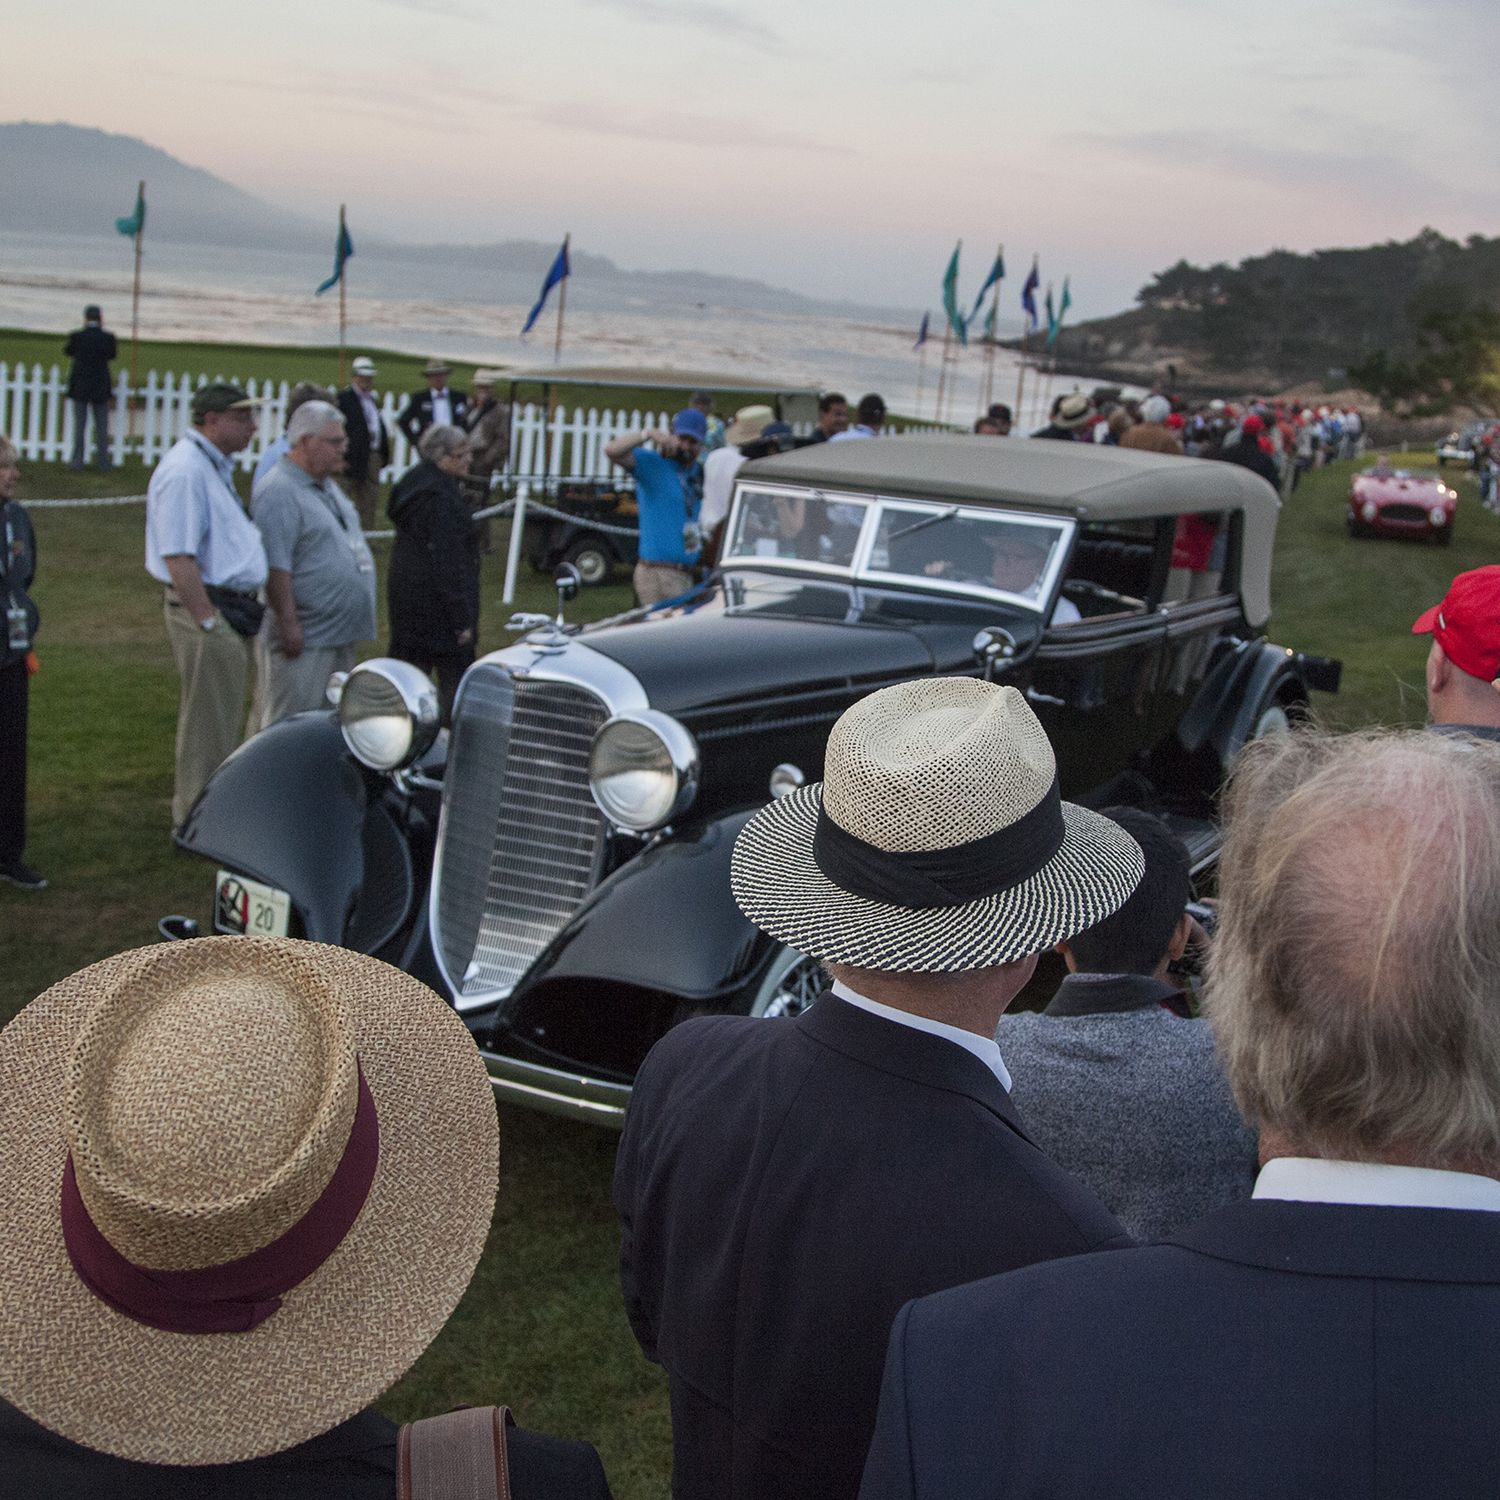 """One time in the Otis Chandler auto collection, John Shibles now owns this 1933 Lincoln. John drives this V-12 pre dawn, Sunday morning onto the 18th green at The Lodge at Pebble Beach. This annual ritual that has come to be known as """"Dawn Patrol. Every year, the world's auto enthusiasts travel to the Monterey Peninsula to participate in the Car Week that culminates with the luxurious Concours d'Elegance classic car competition. PHOTOGRAPHED SUNDAY AUGUST 16, 2015(Photo by Don Kelsen/Los Angeles Times via Getty Images)"""